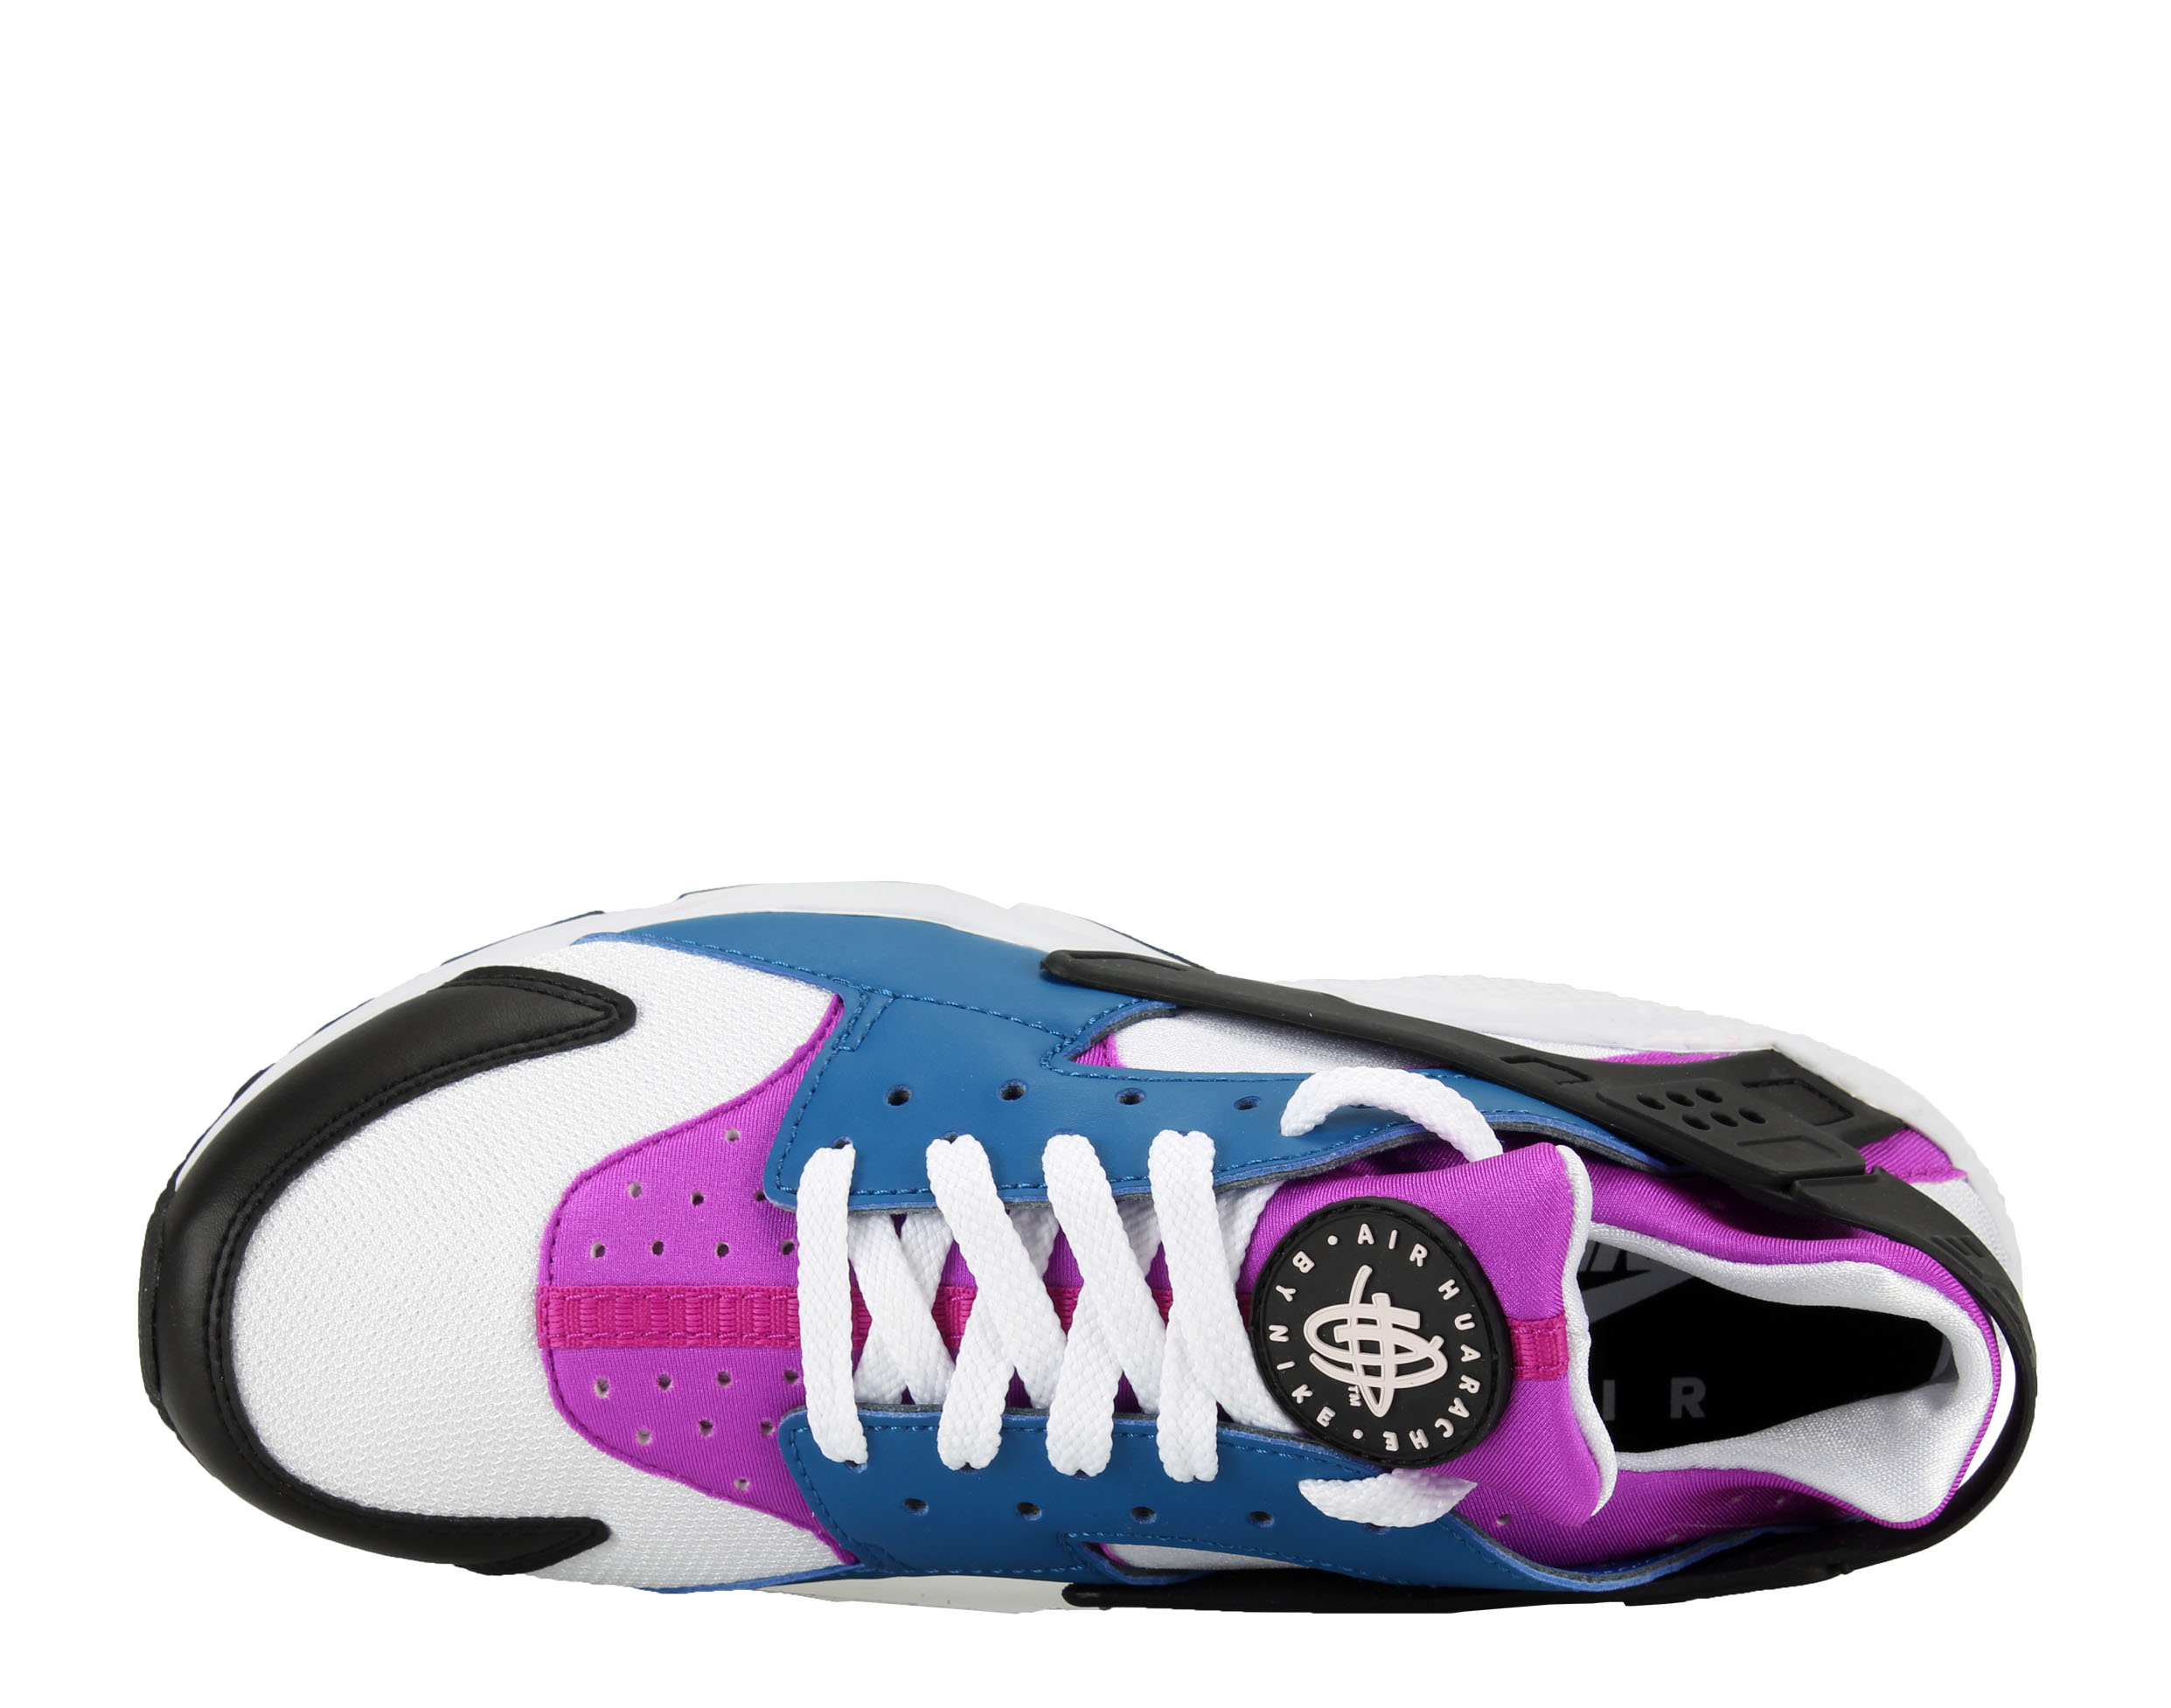 Nike Air Huarache Blue Jay/White-Hyper Violet Men's Running Shoes 318429-415